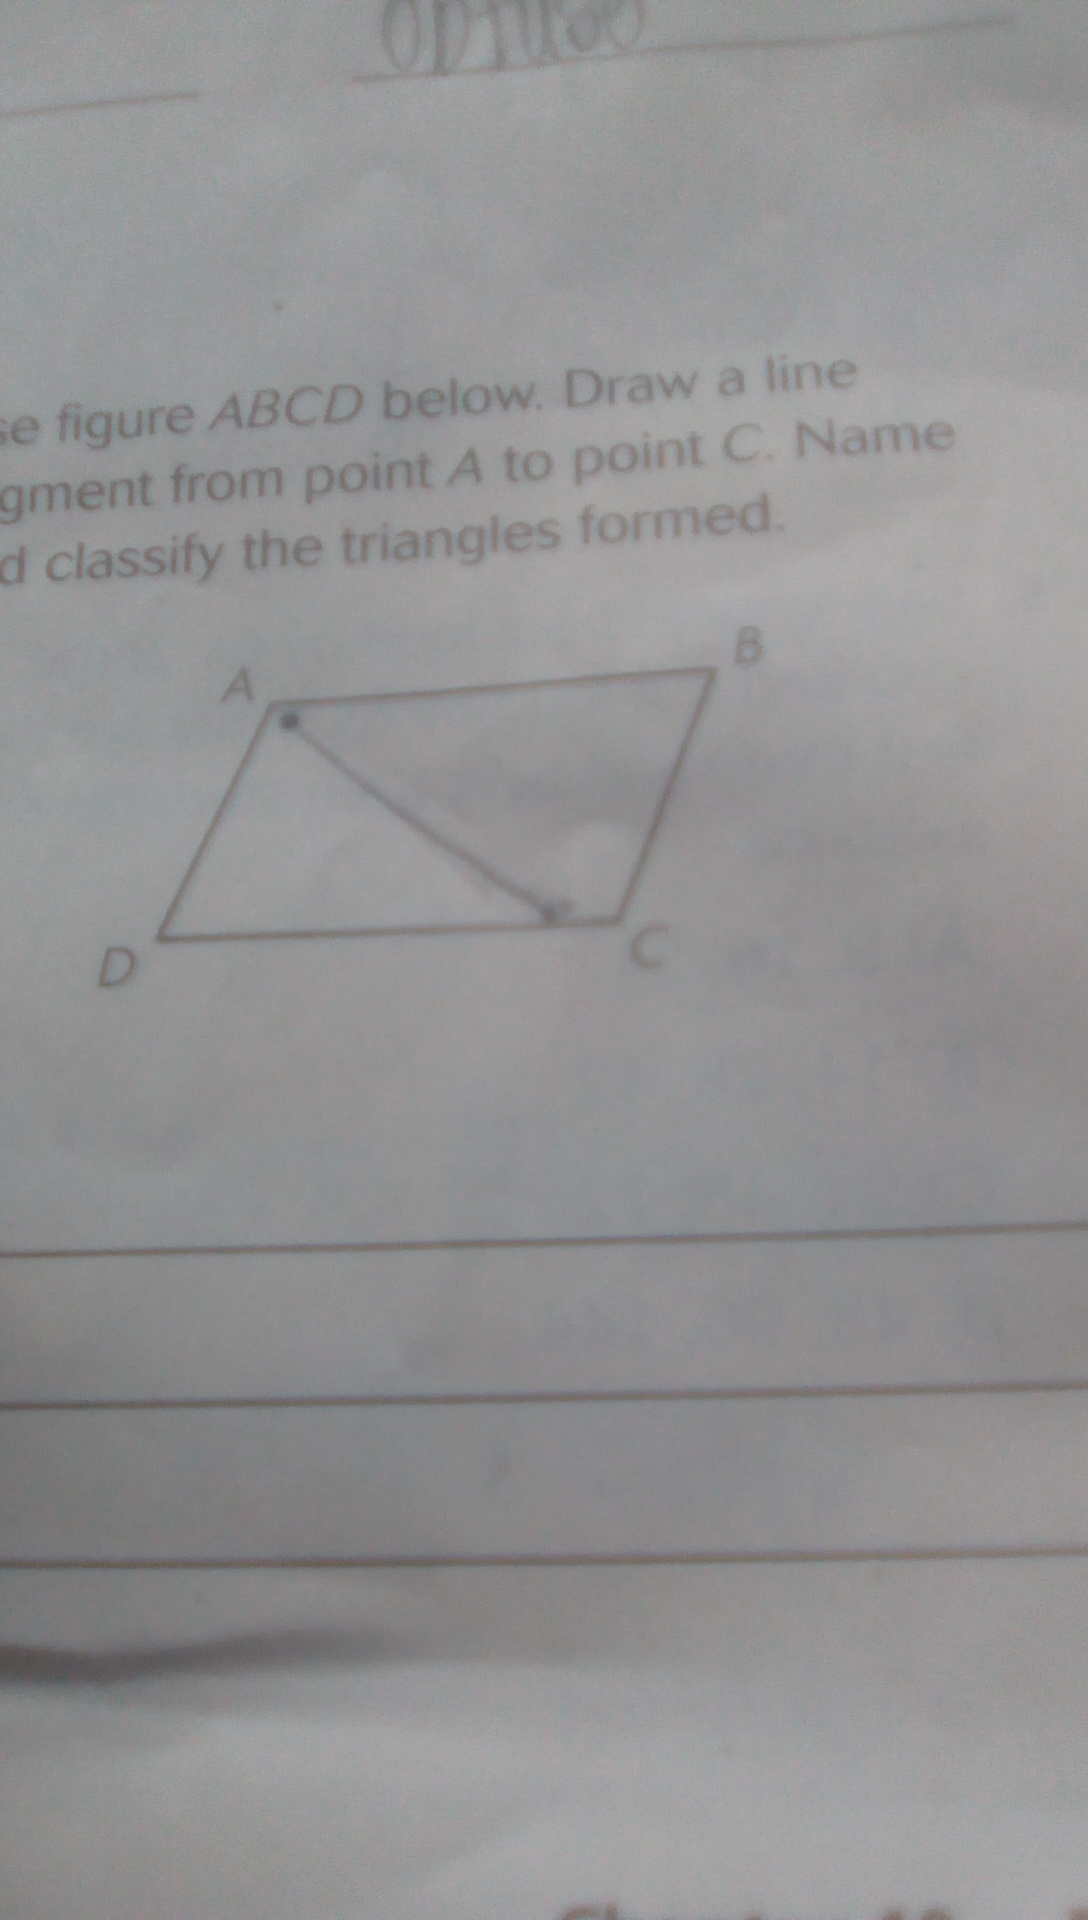 Use Figure Abcd Below Draw A Line Segment From Point A To